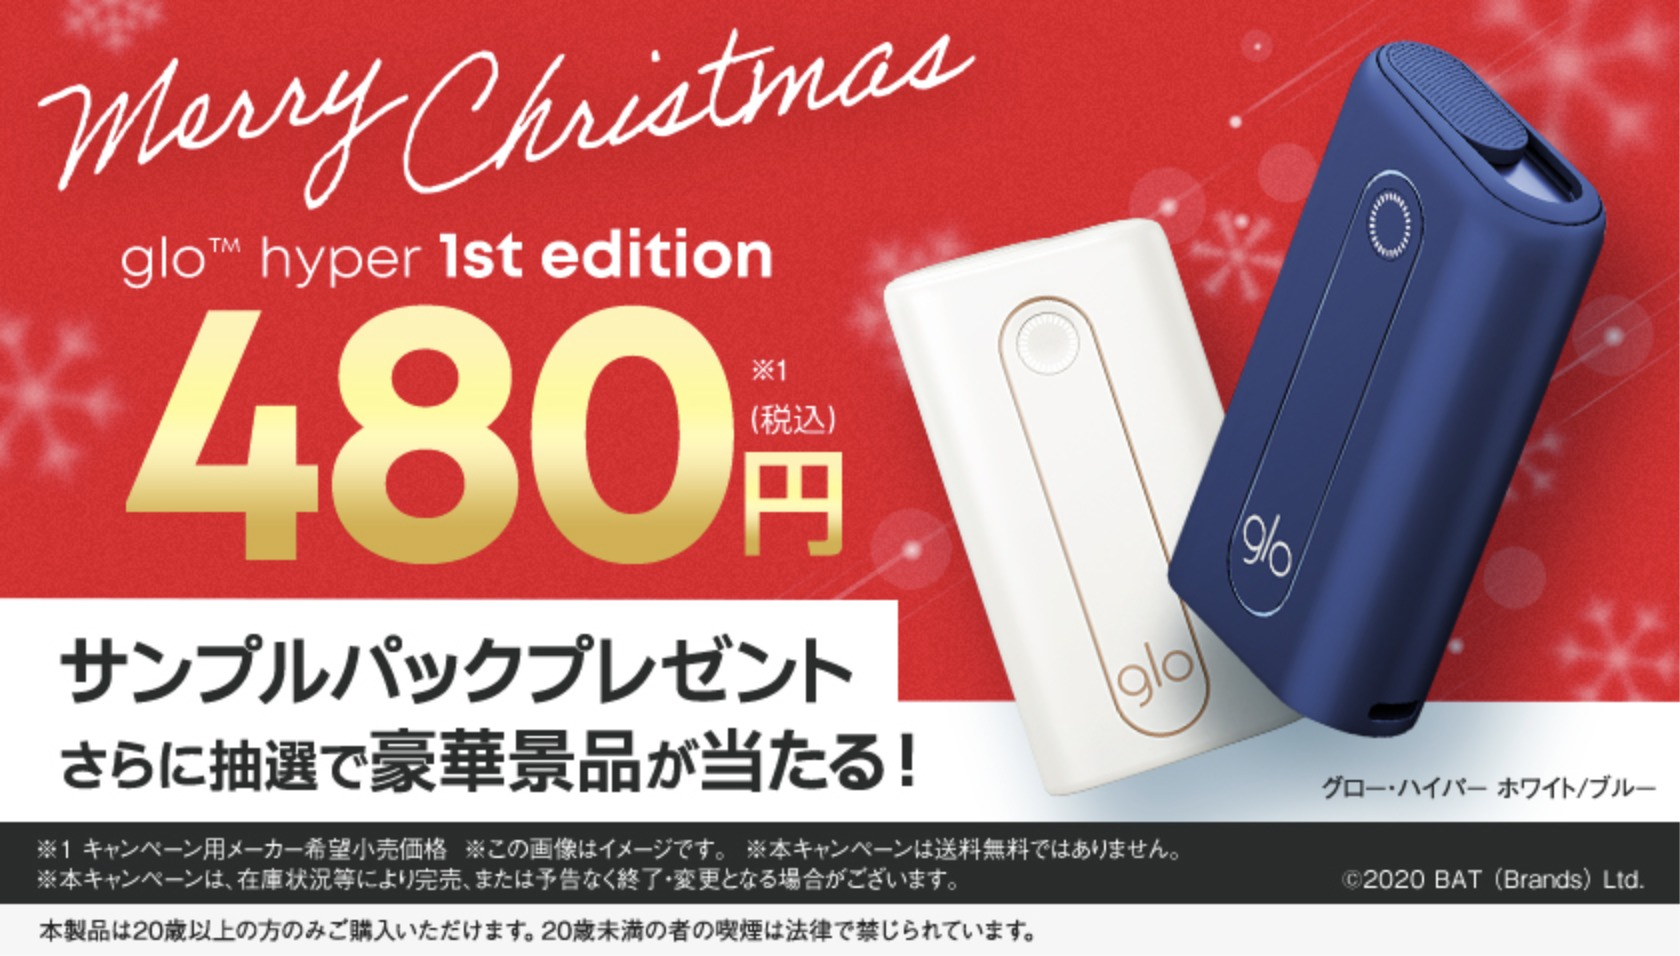 glo hyper christmas campaign image